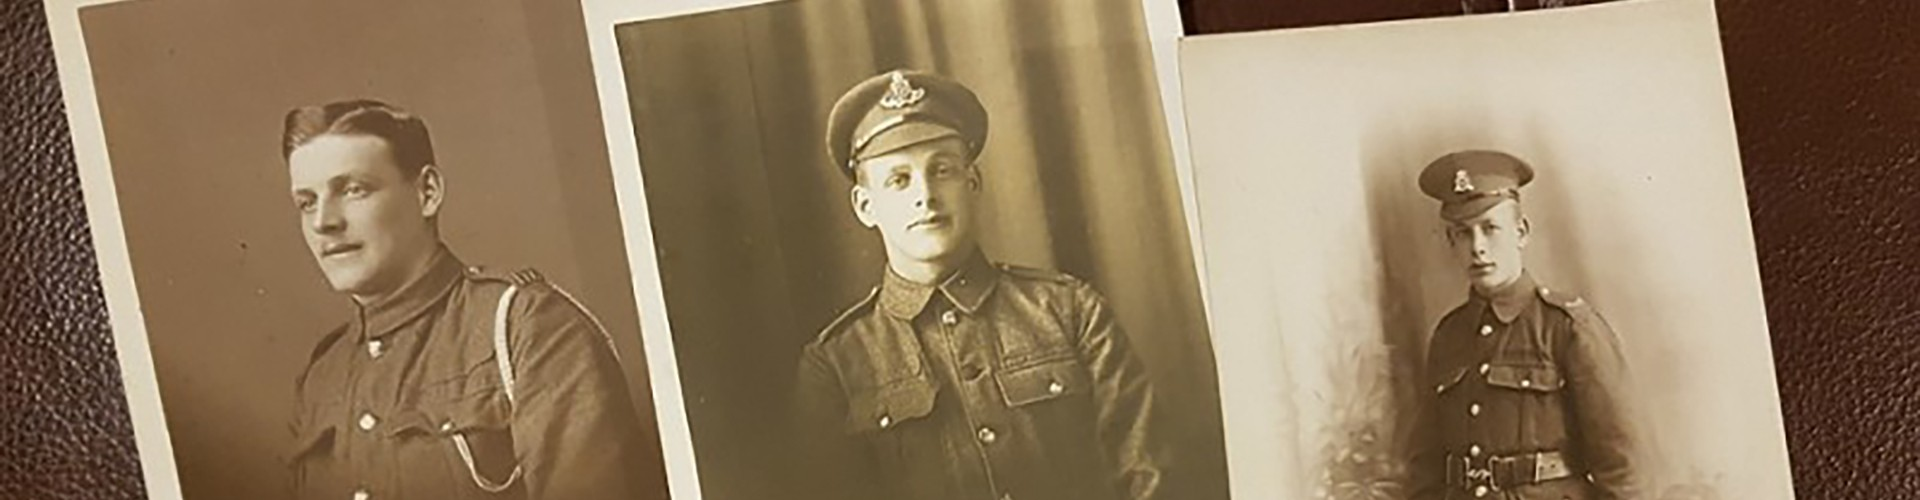 three brothers photographs from first world war